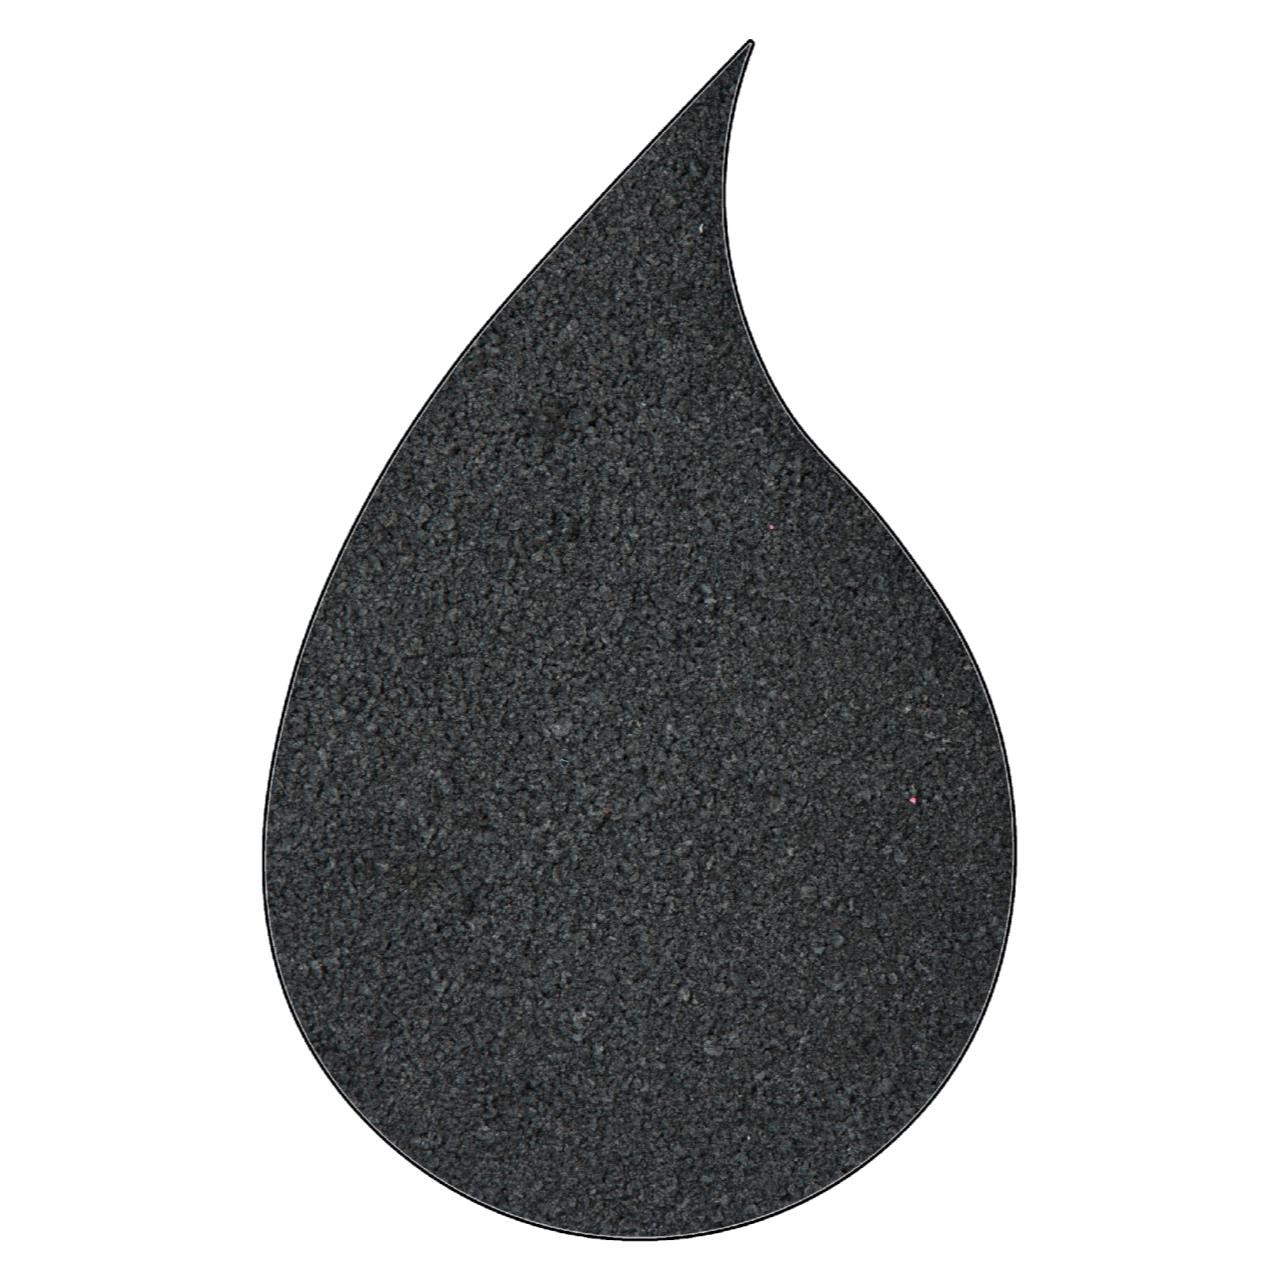 WOW Embossing Powder, Black Puff - 5060210520830